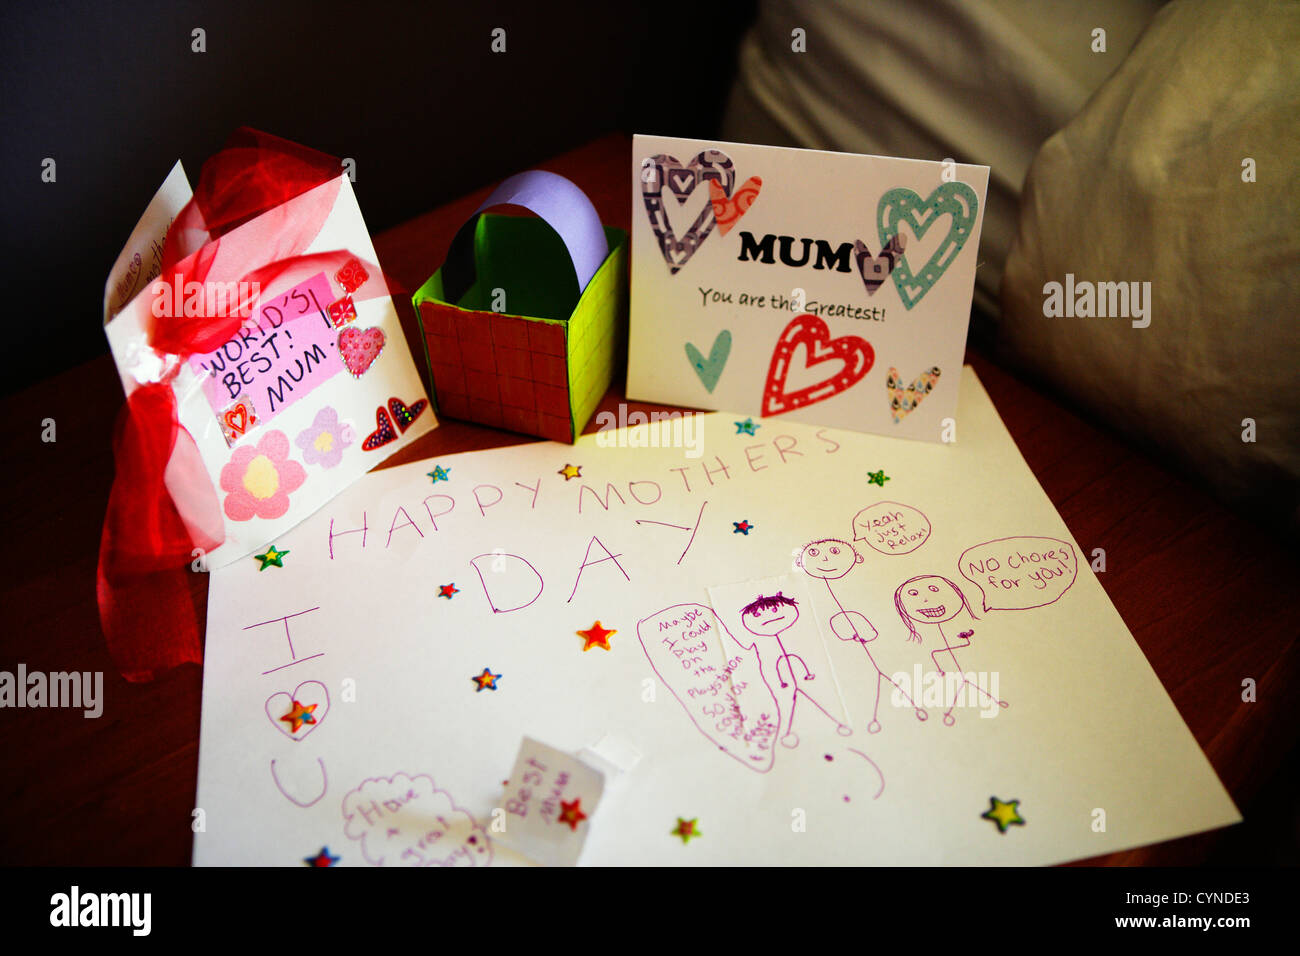 Happy Mothers Day home-made cards - Stock Image